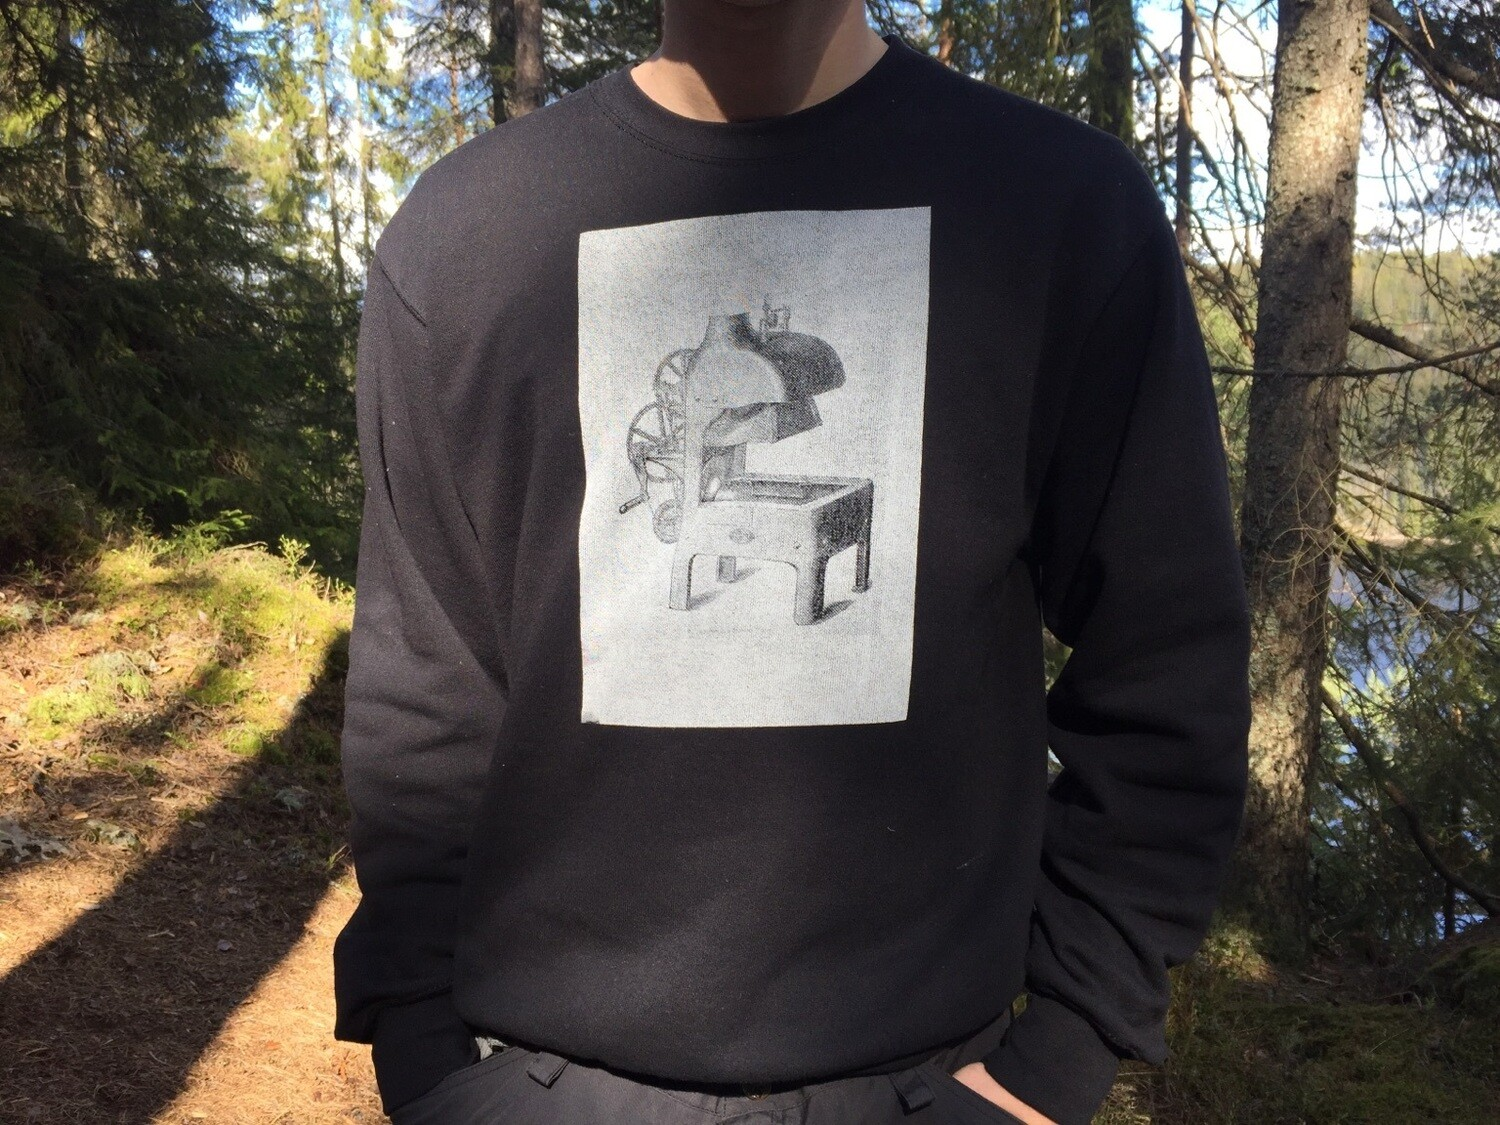 Alldays & Onions Screenprinted Sweatshirt, Black